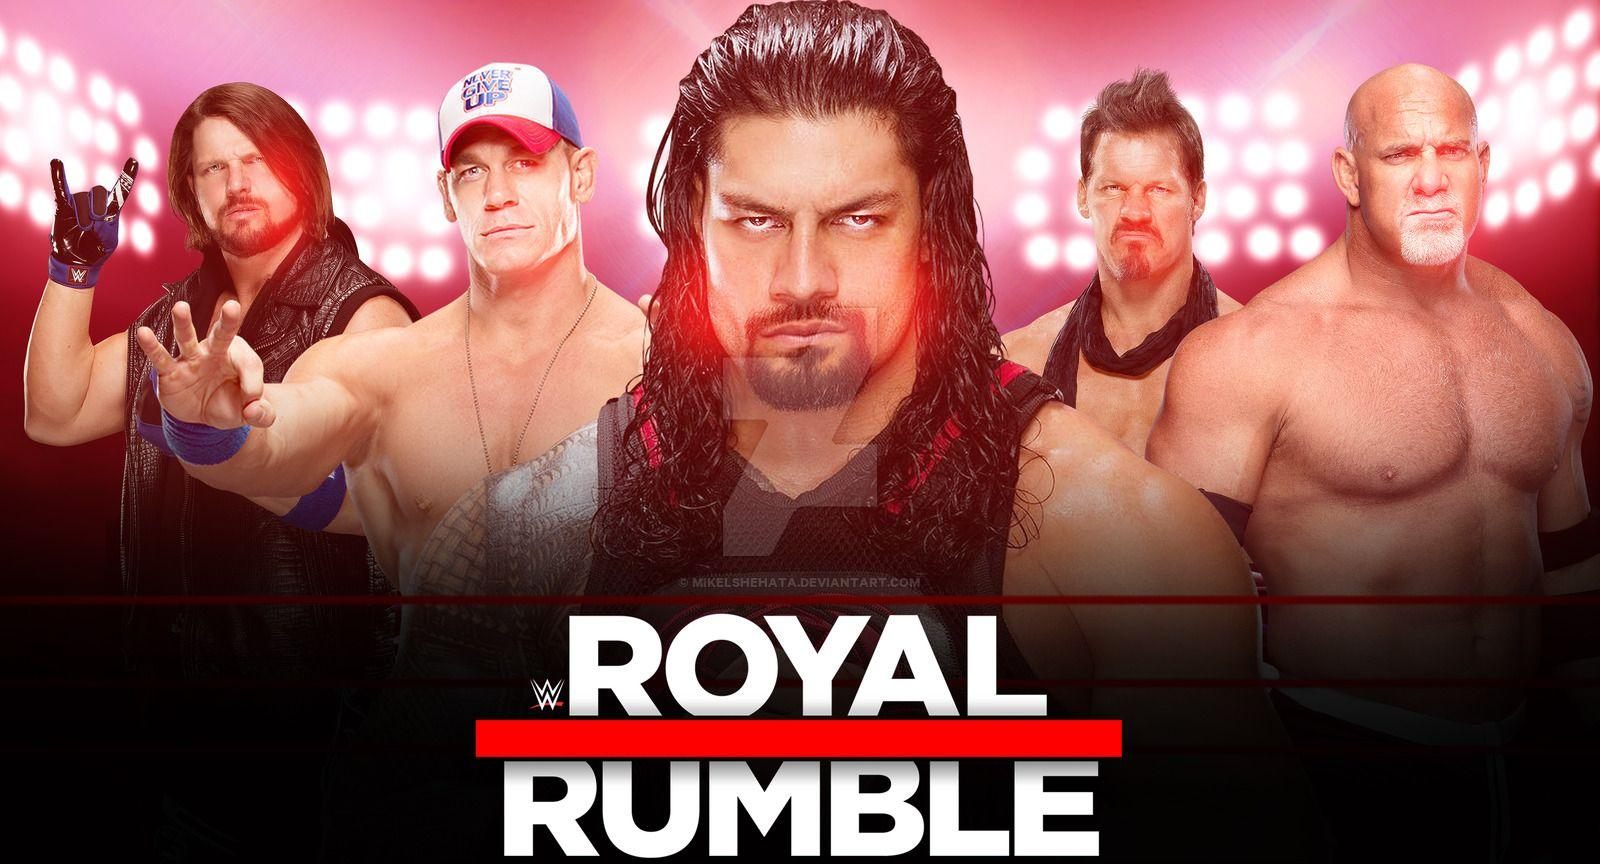 WWE Royal Rumble 2017 New Wallpaper by mikelshehata on DeviantArt